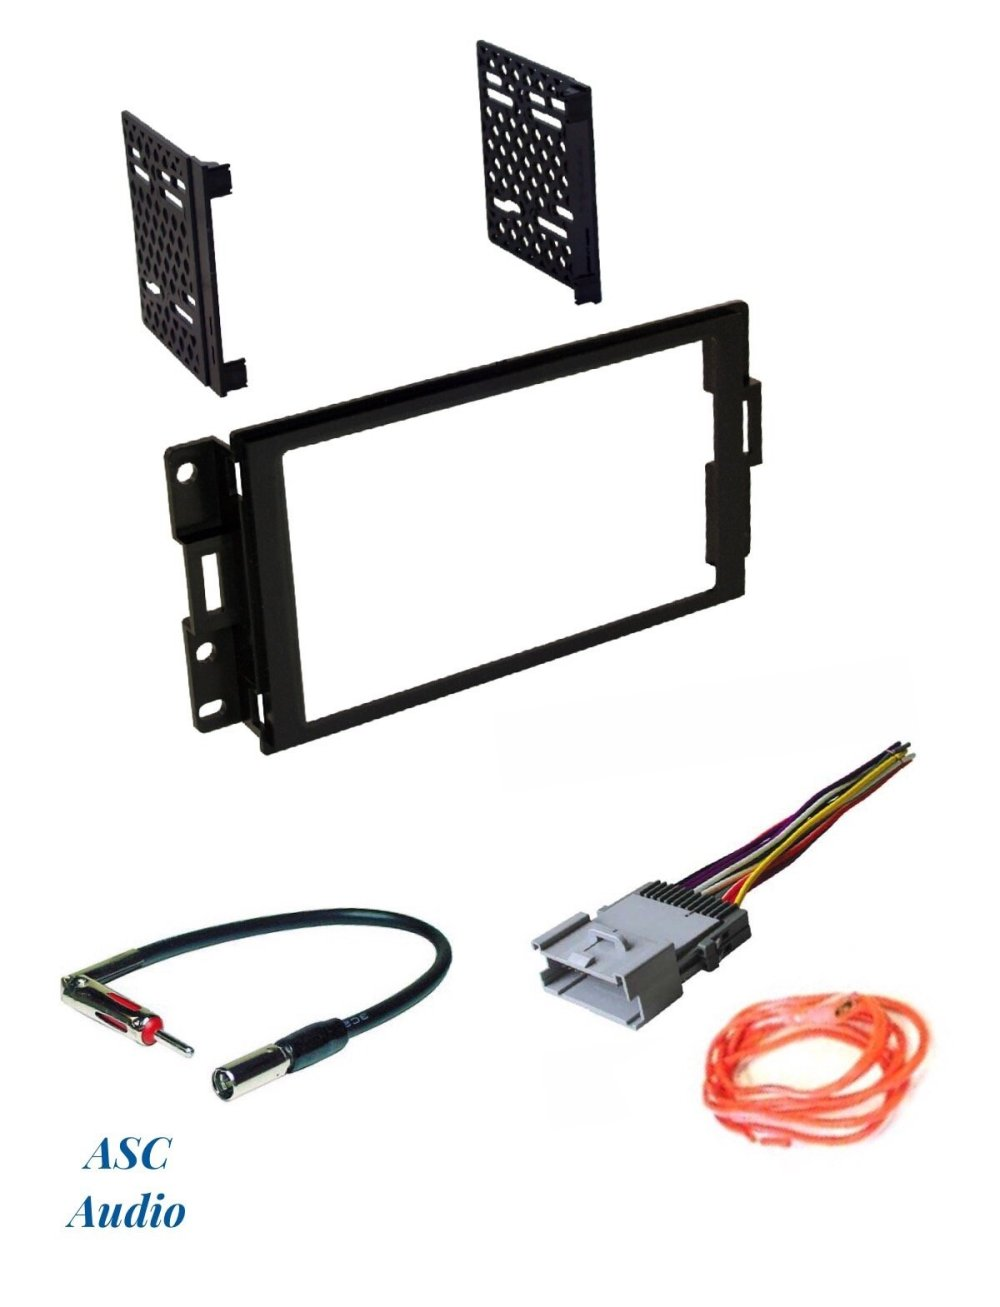 medium resolution of asc audio car stereo radio dash install kit wire harness and antenna adapter to install a double din radio for 2004 2005 2006 2007 2008 pontiac grand prix